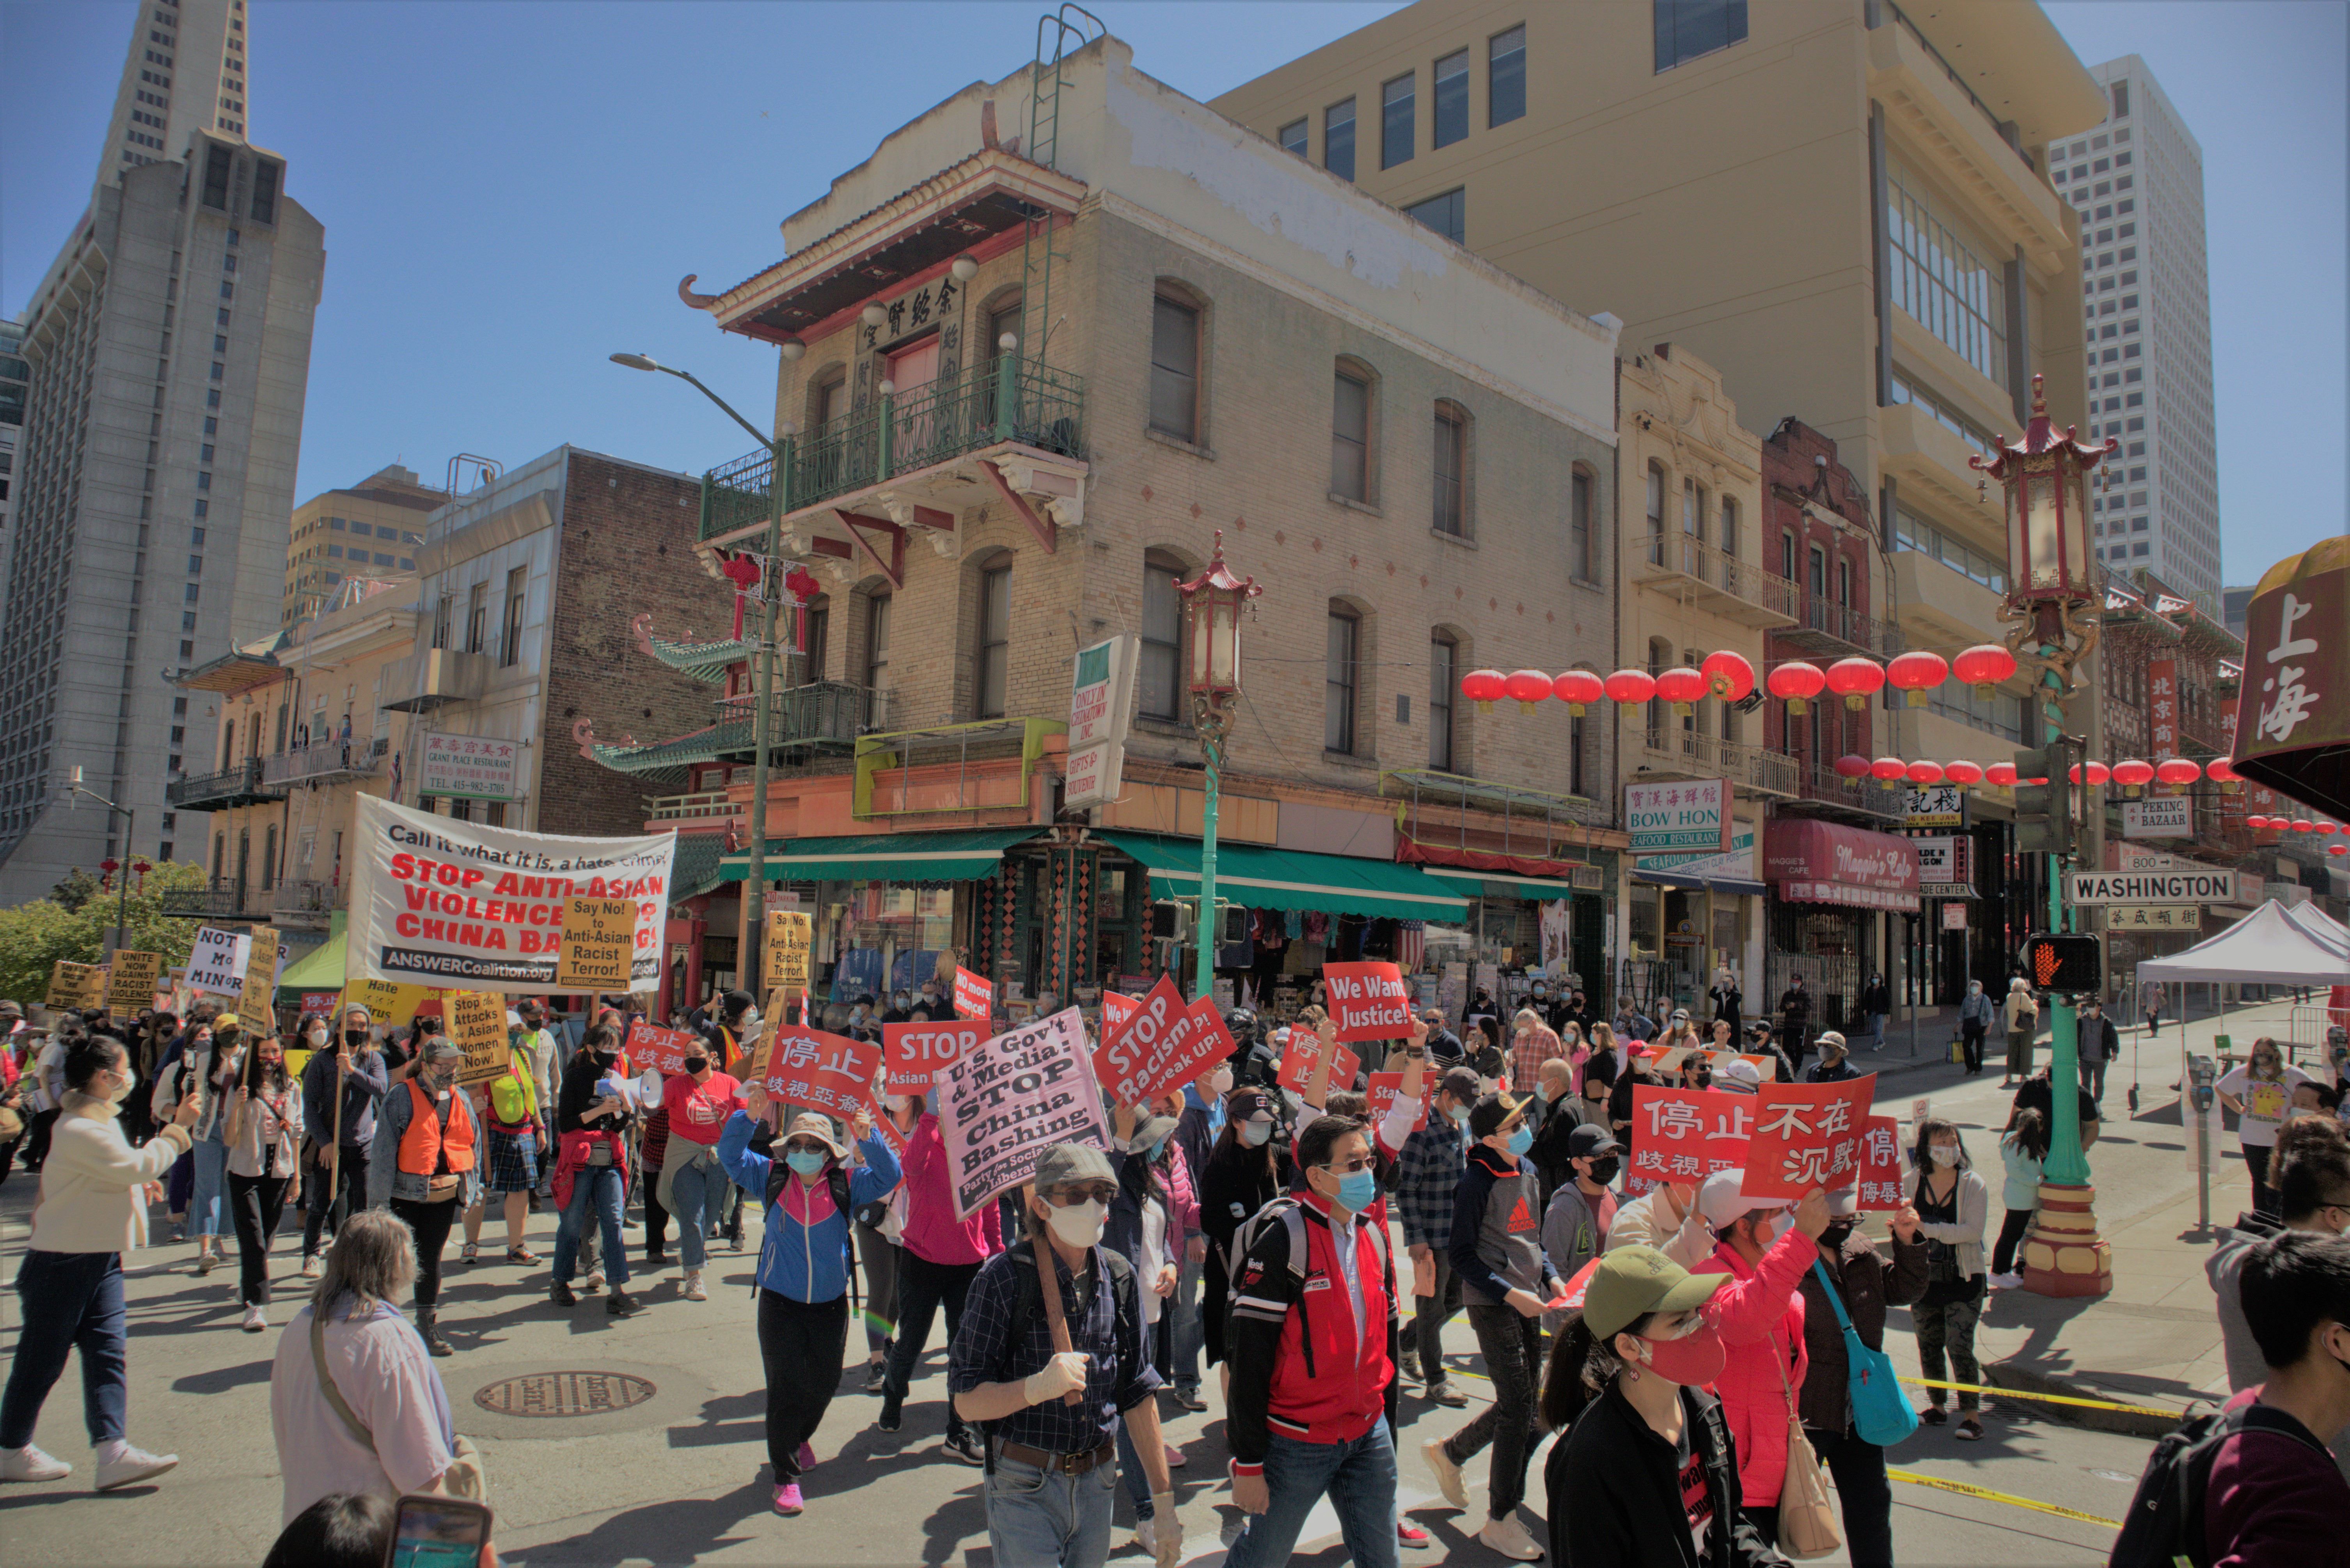 Around 3000 people rallied against anti-Asian hate in San Francisco on March 27.